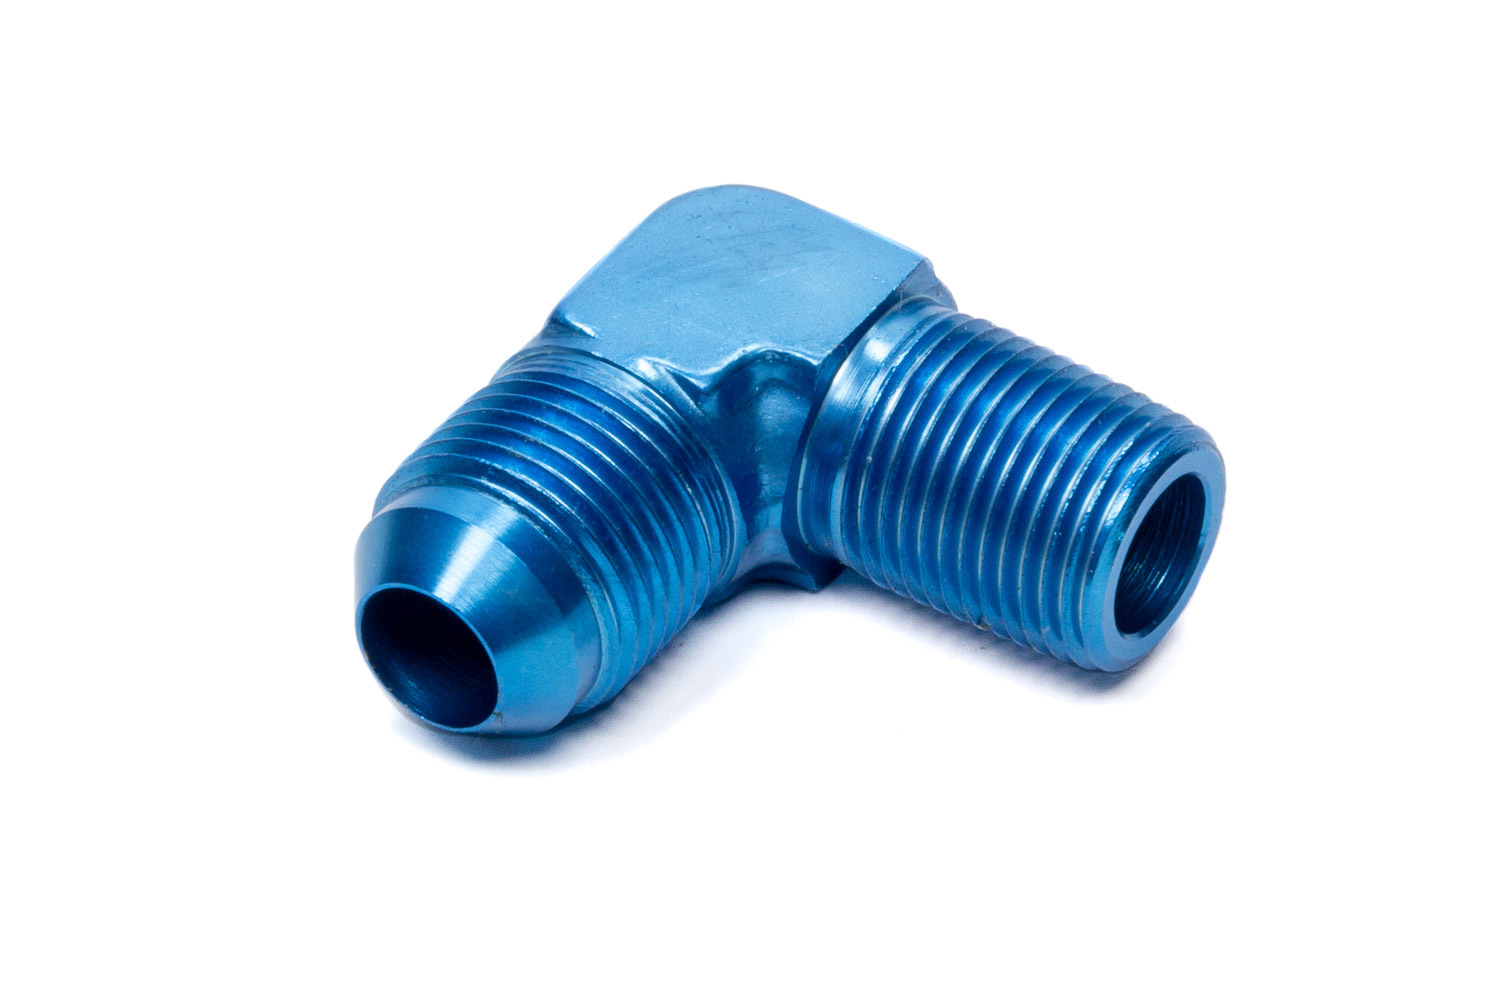 Fragola 482208 Fitting, Adapter, 90 Degree, 8 AN Male to 3/8 in NPT Male, Aluminum, Blue Anodized, Each